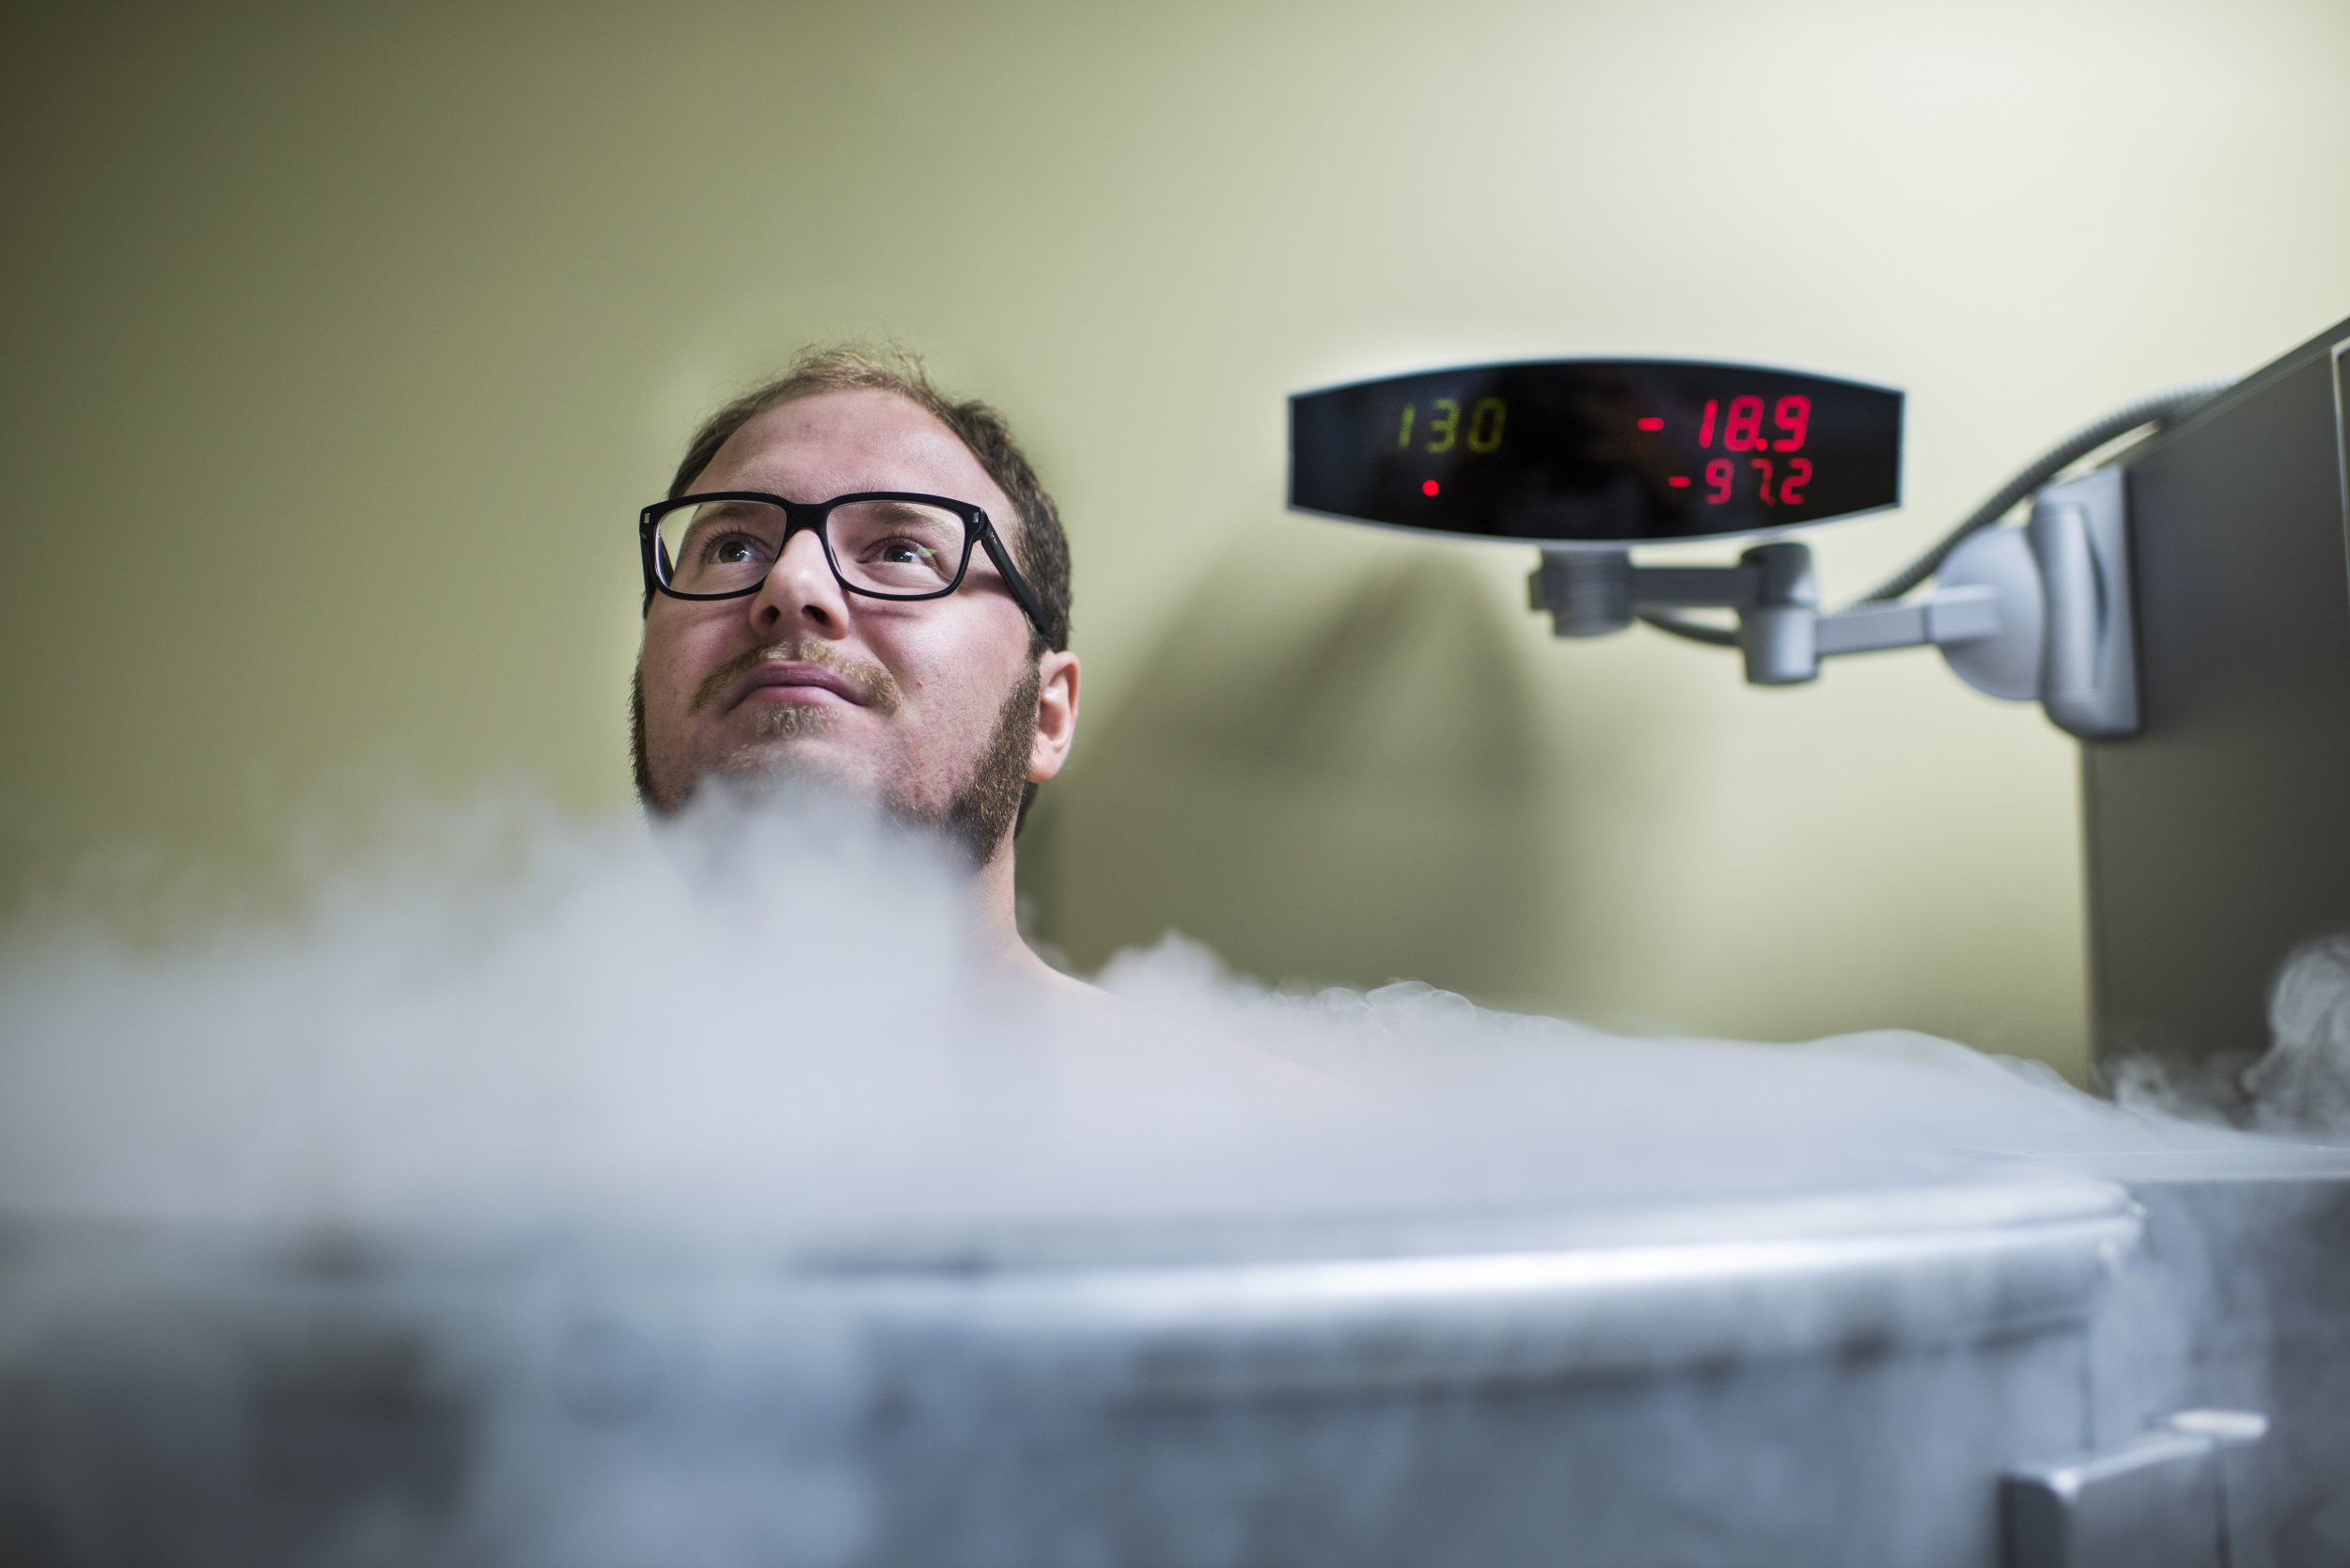 Cryotherapy Post Workout Exposure To Extreme Cold Lacks